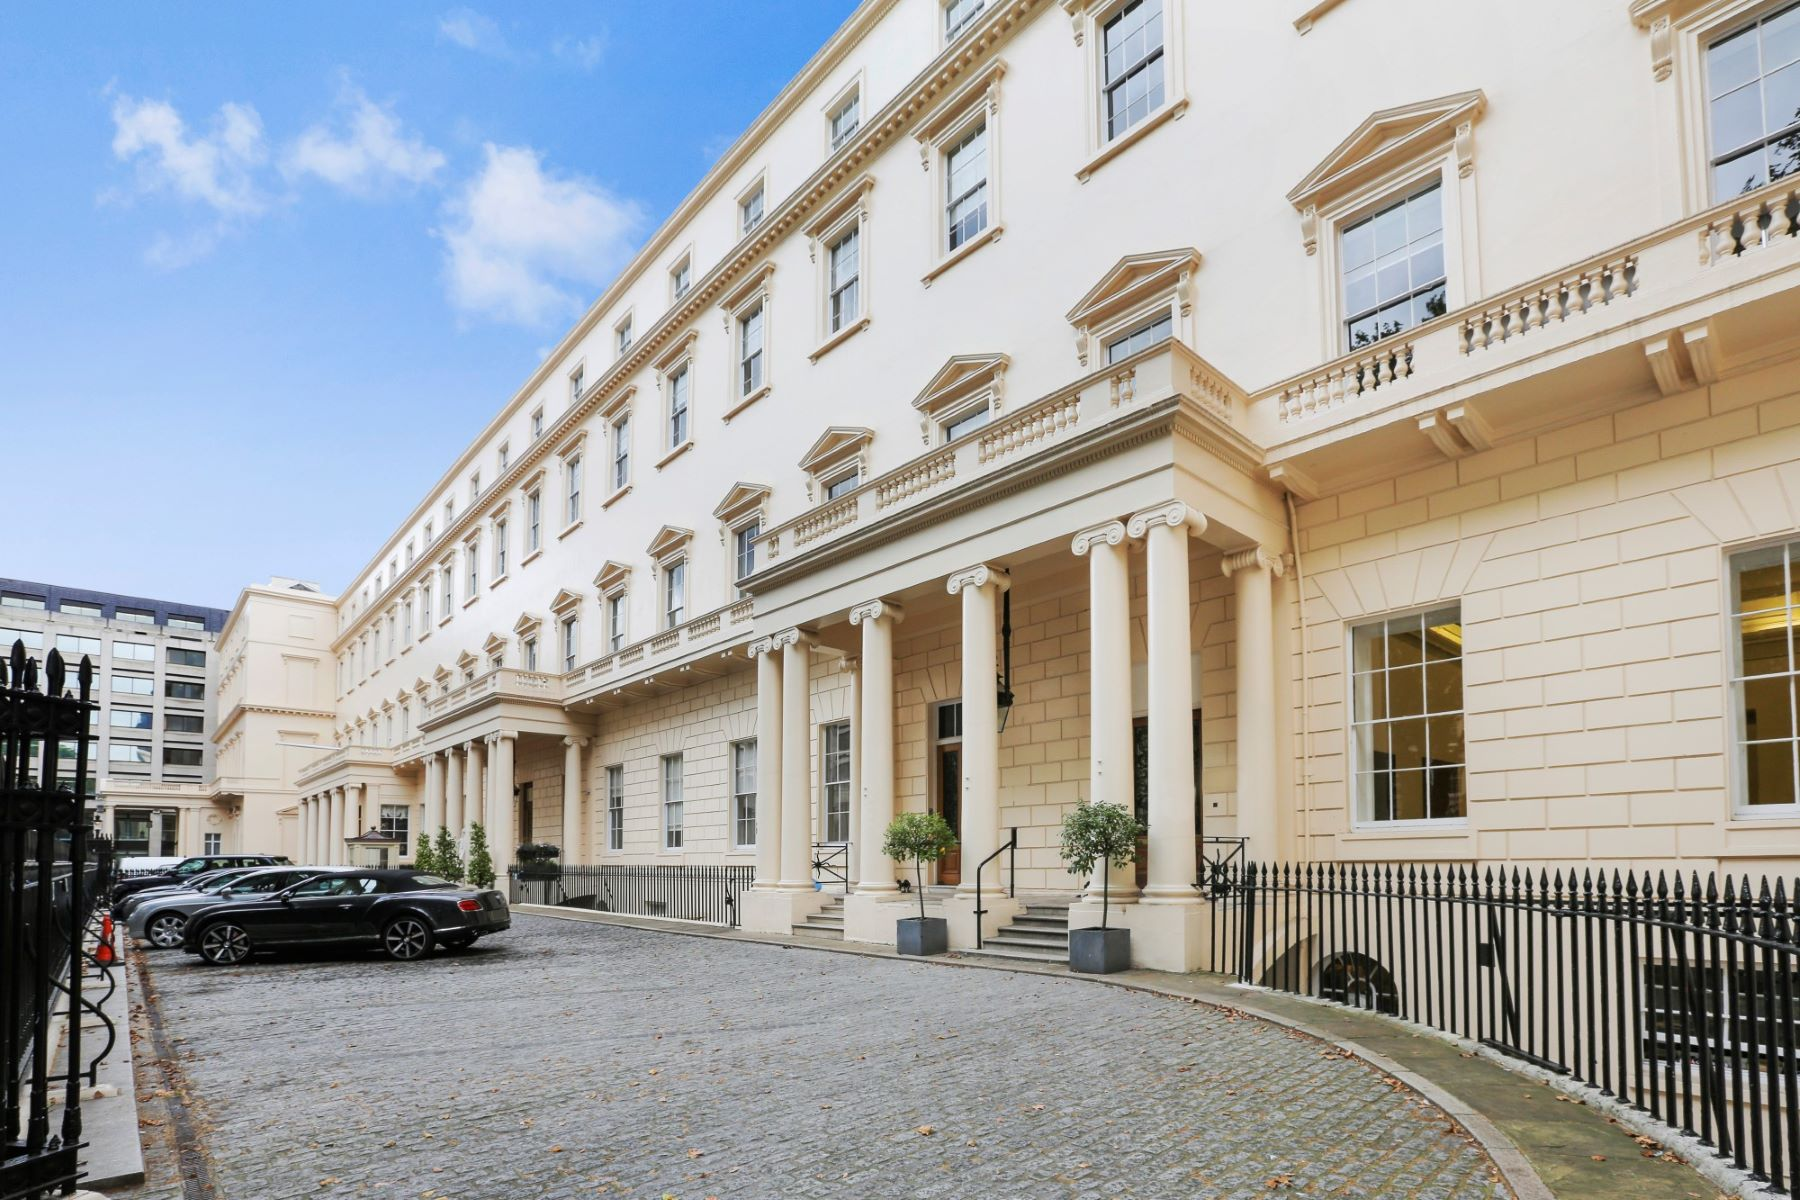 Appartement pour l Vente à Carlton House Terrace, St James's London, Angleterre, Royaume-Uni